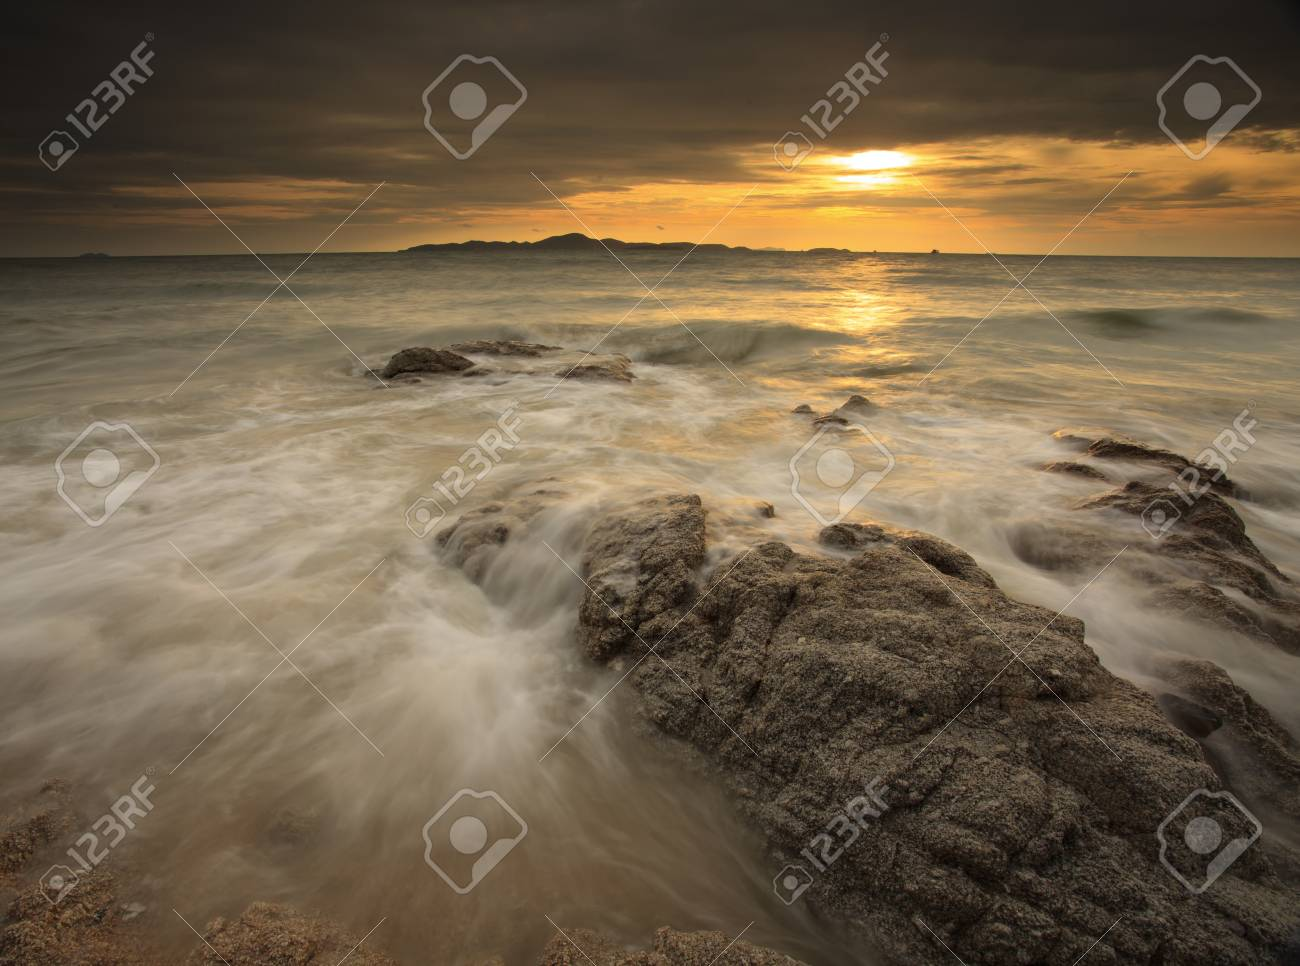 Big wave and the rock with sunset sky at Pattayabeach, Thailand Stock Photo - 13497704